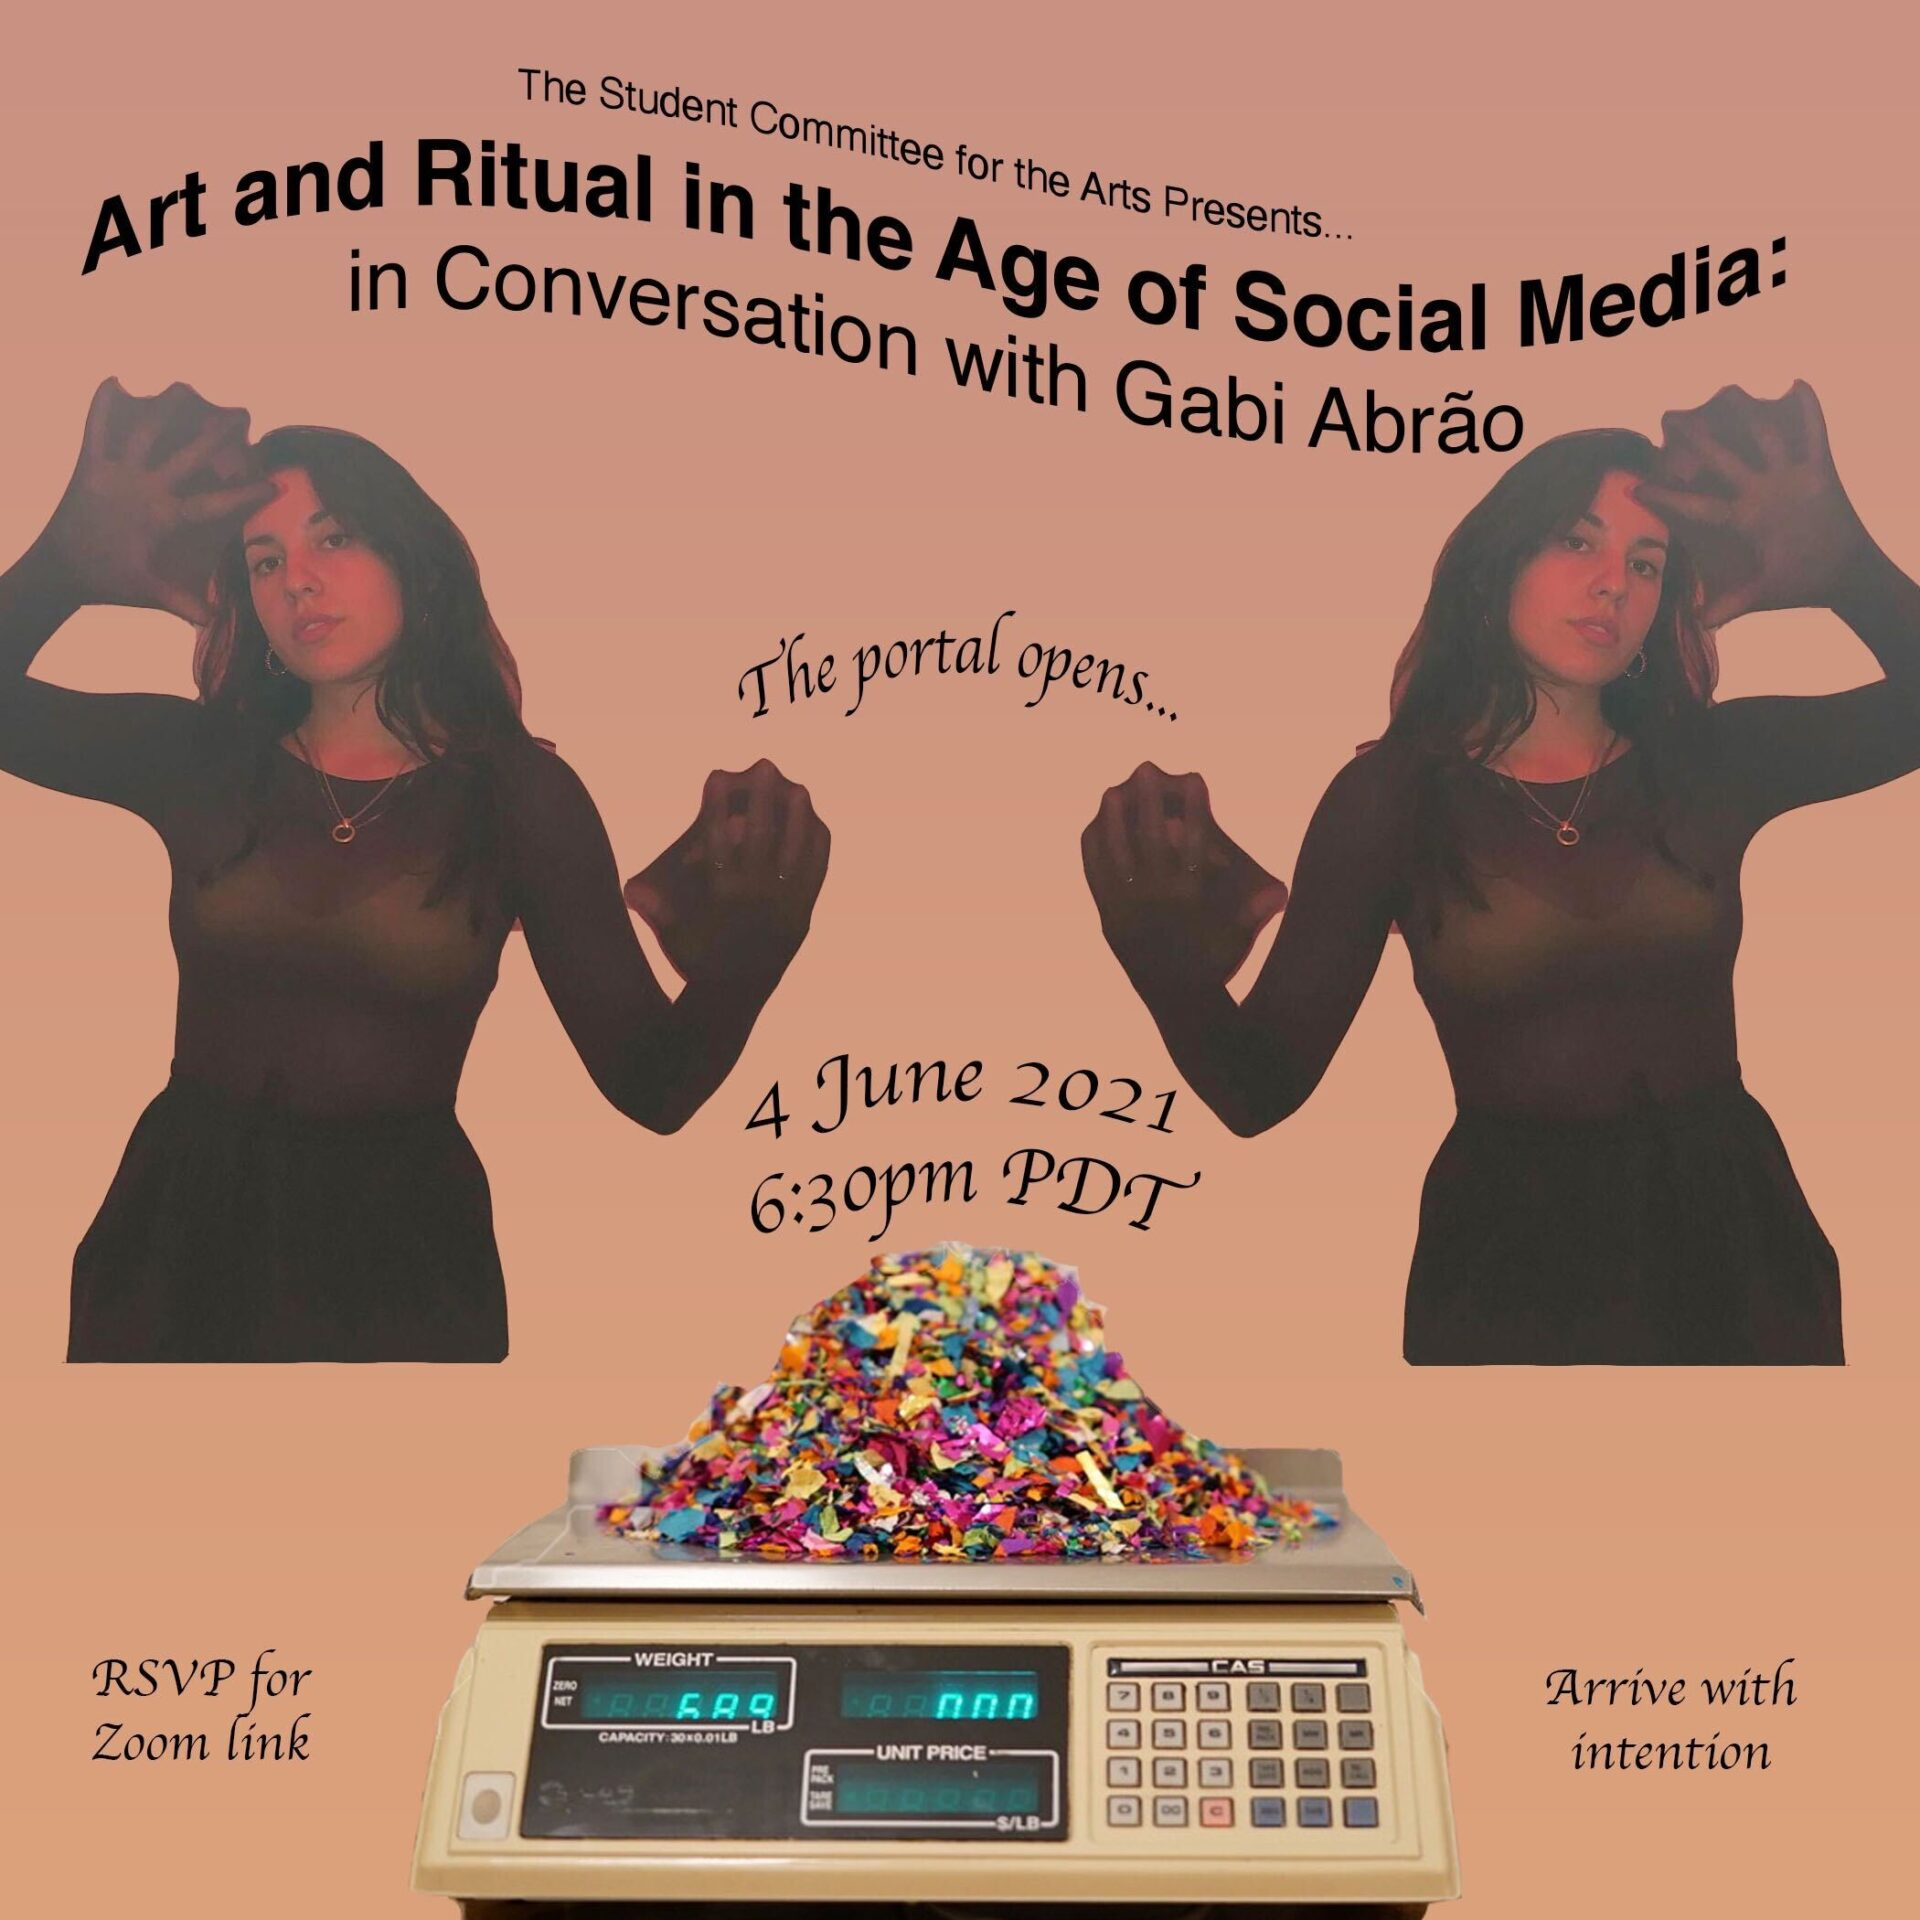 Art and Ritual in the Age of Social Media - with Gabi Abrão